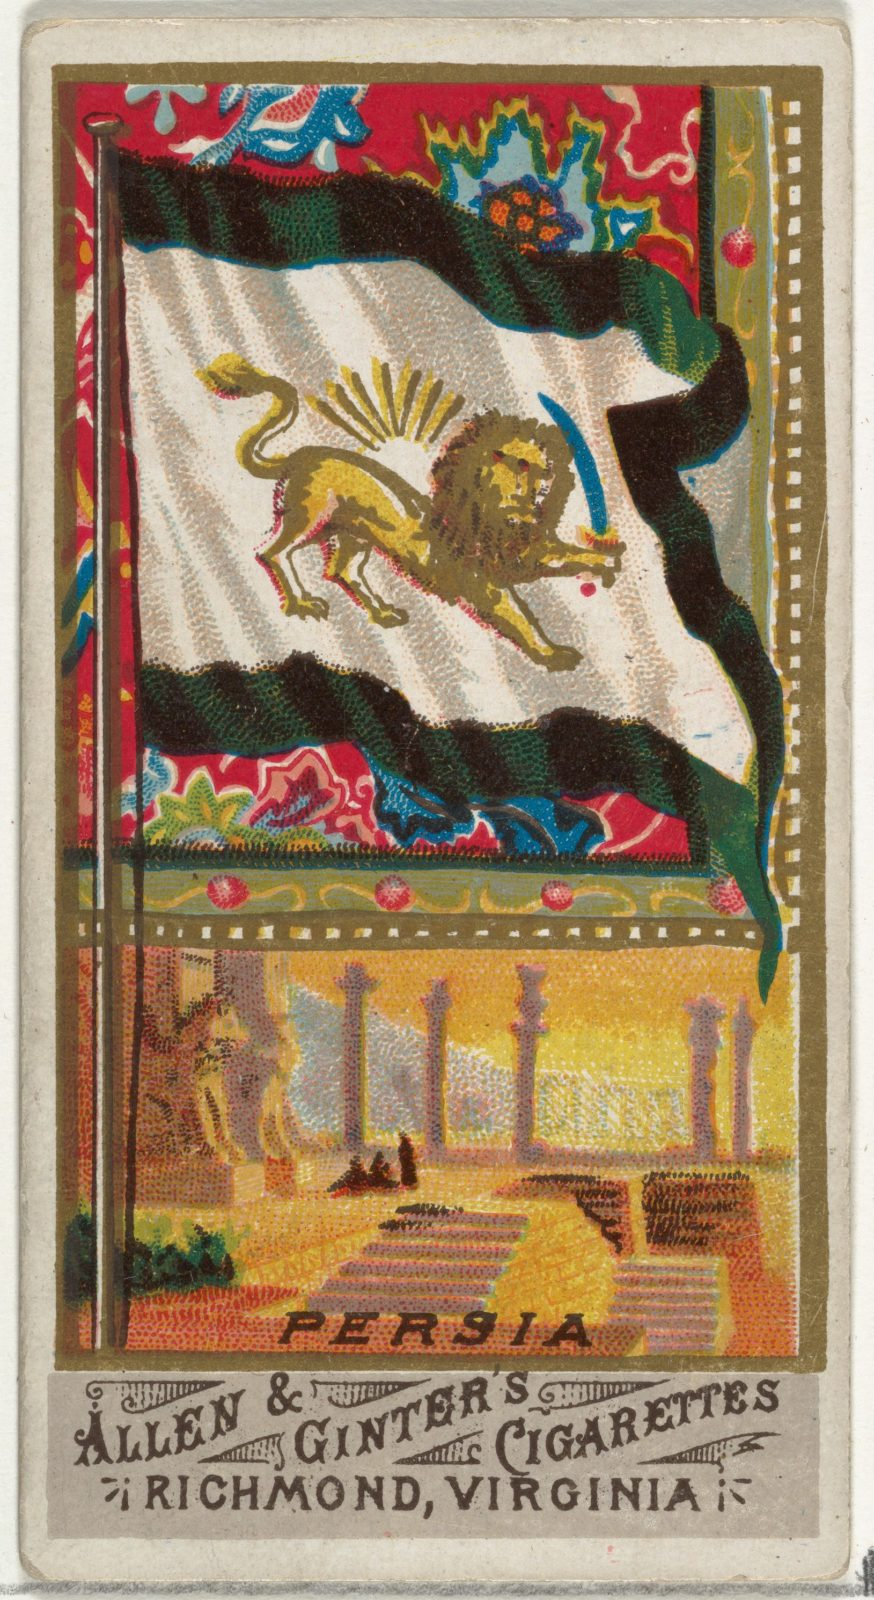 Persia, from Flags of All Nations, Series 1 (N9) for Allen & Ginter Cigarettes Brands